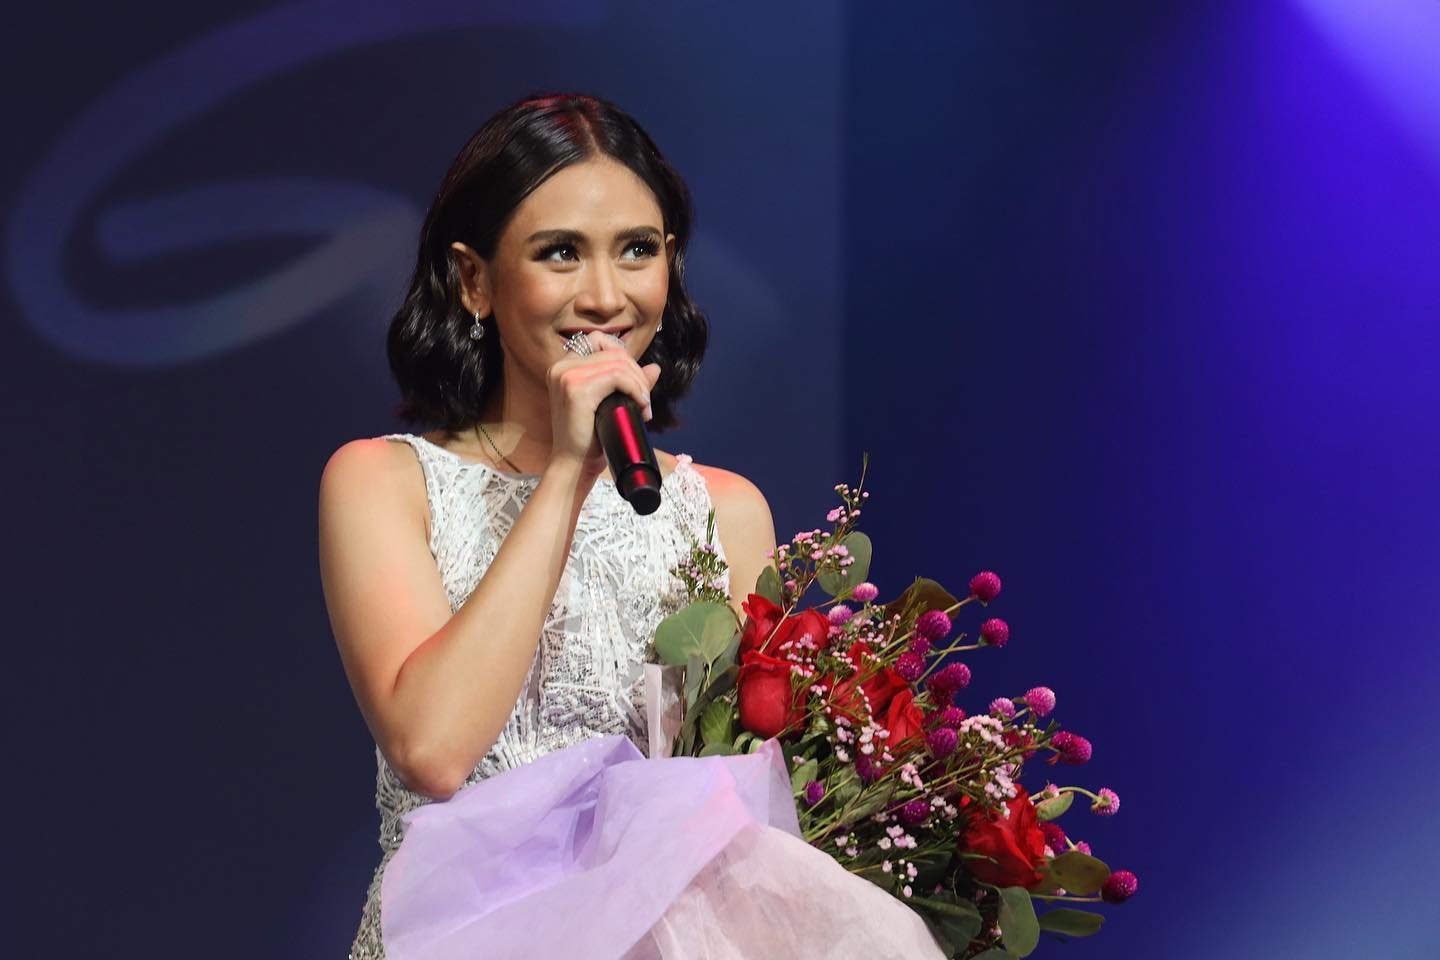 Sarah G Live in Canada